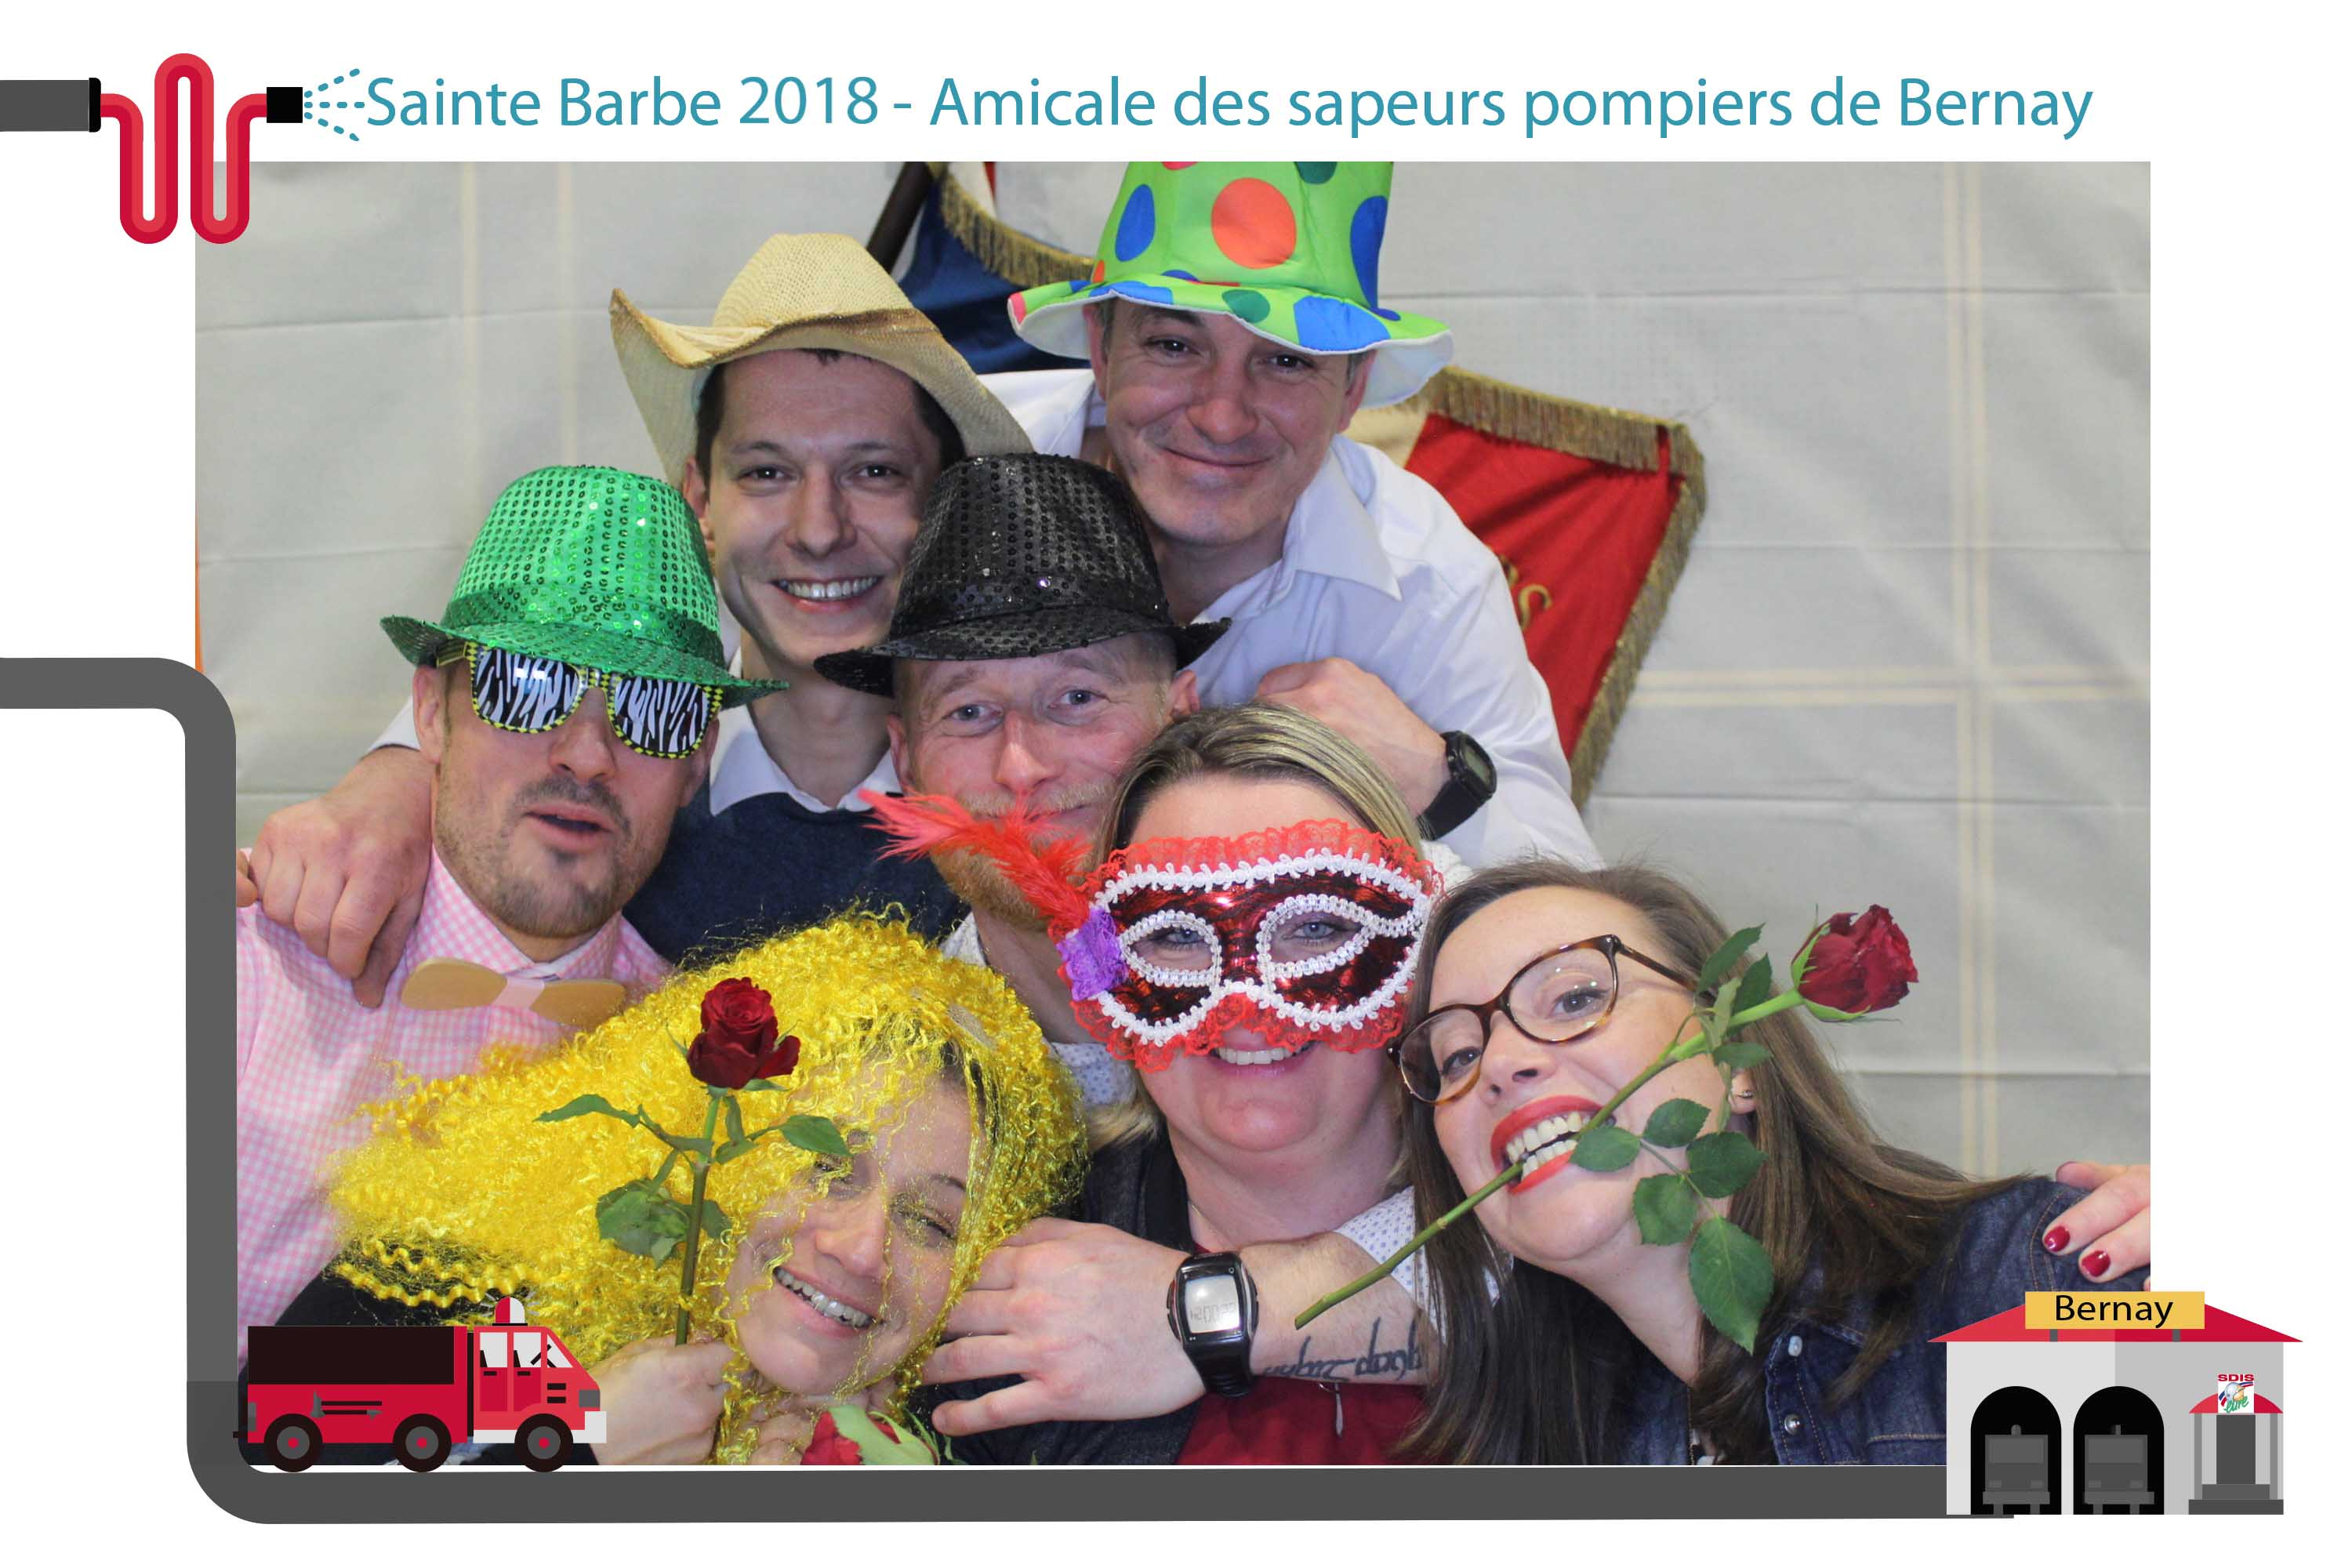 borne photo selfie photobooth bernay pompiers eure normandie